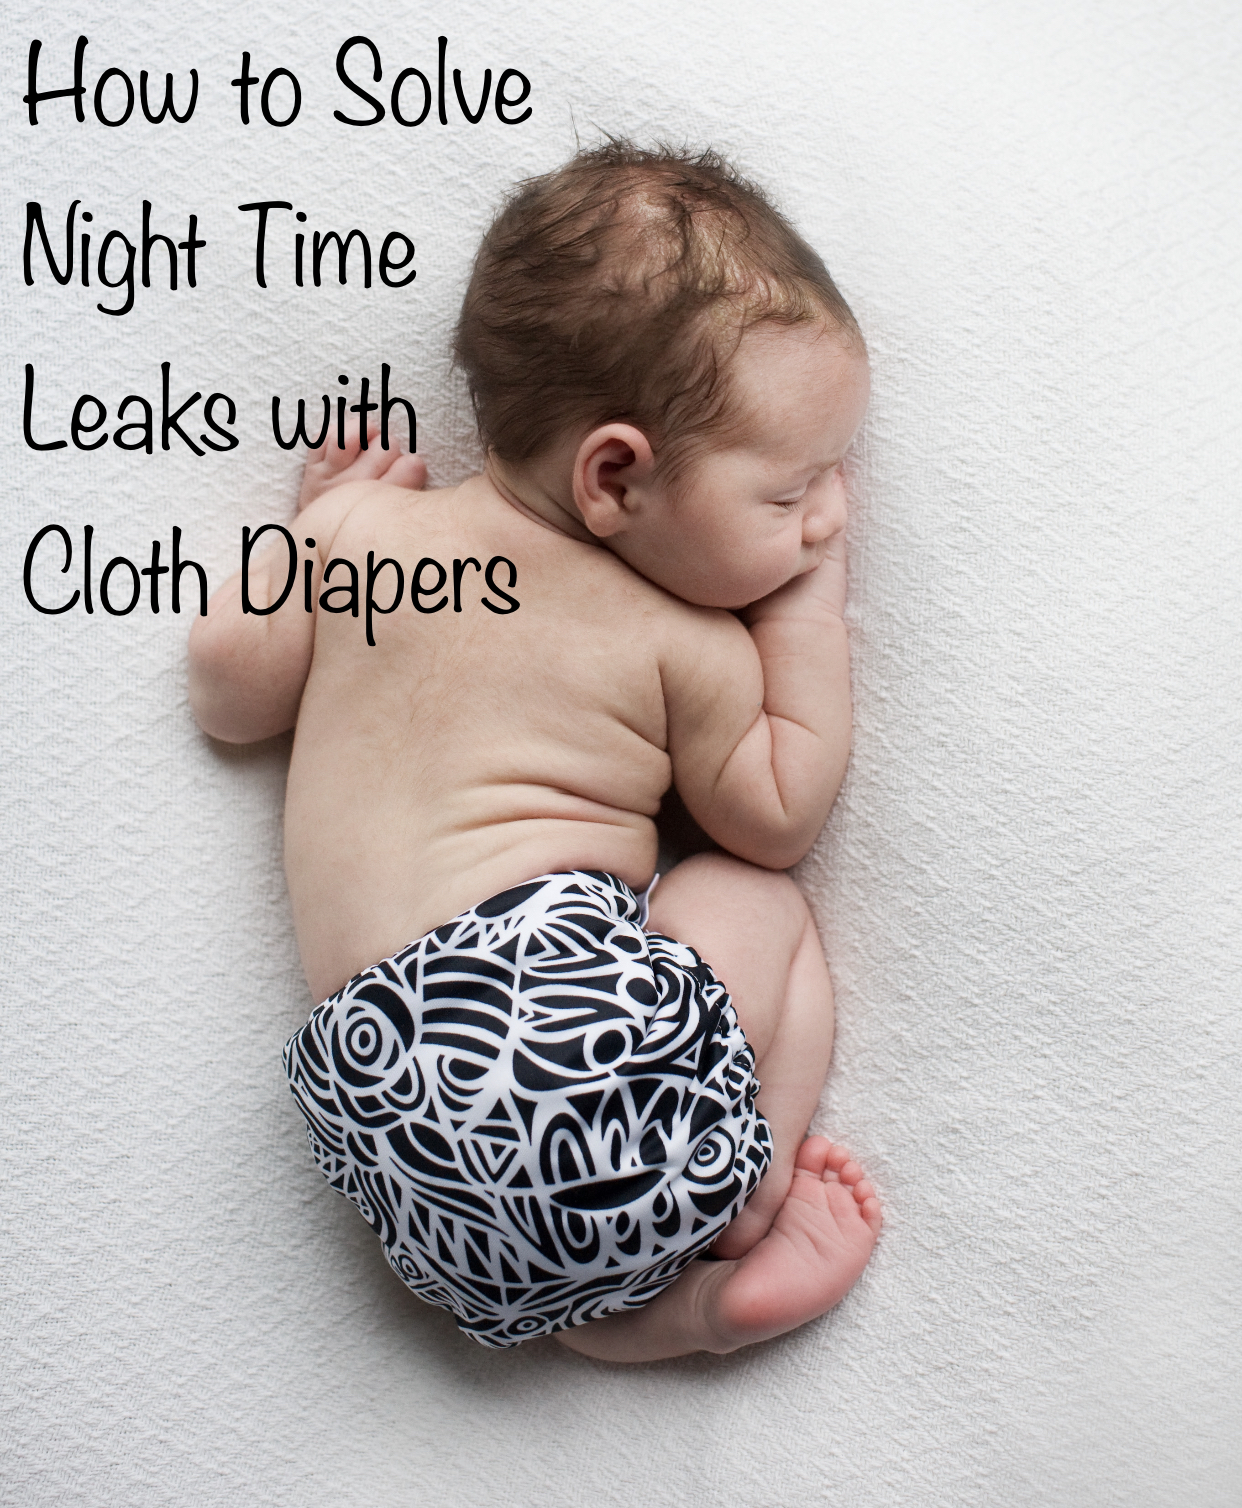 How to Solve Night Time Leaks with Cloth Diapers #cottonbabies #clothdiapers #bumgenius #lovemyclothdiapers #parentinghack